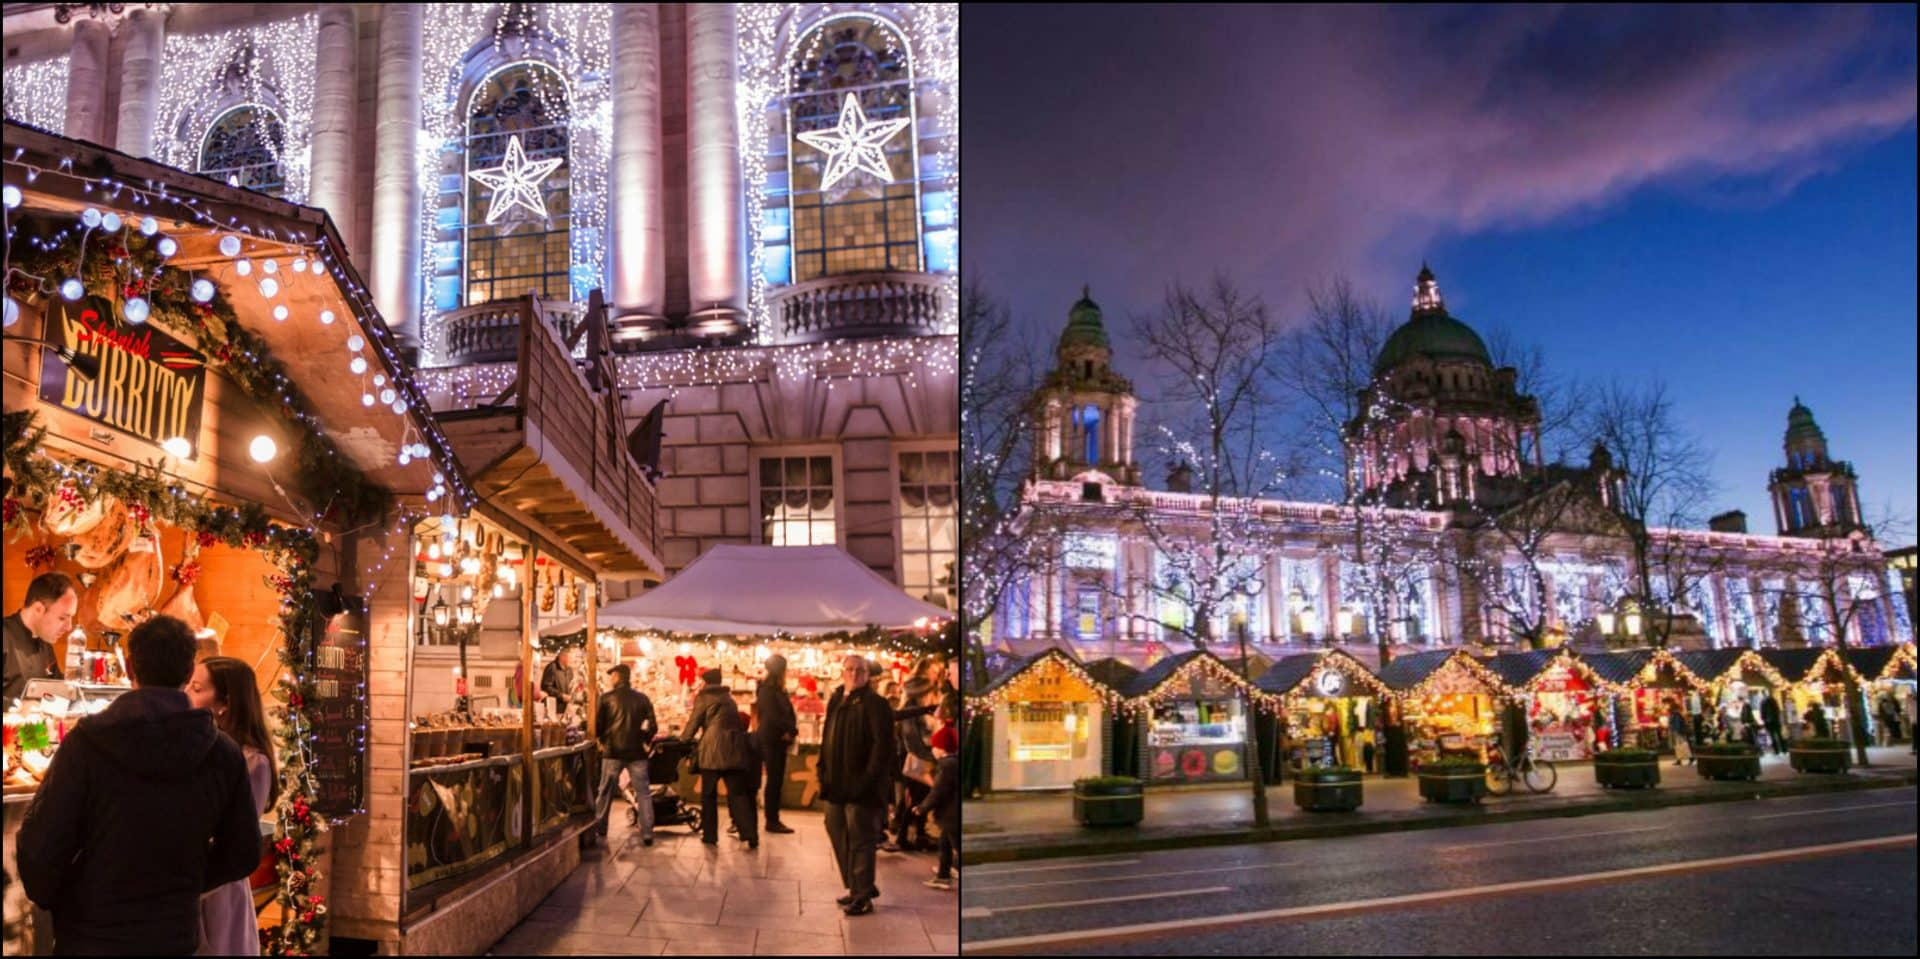 The Belfast Christmas Market opens this